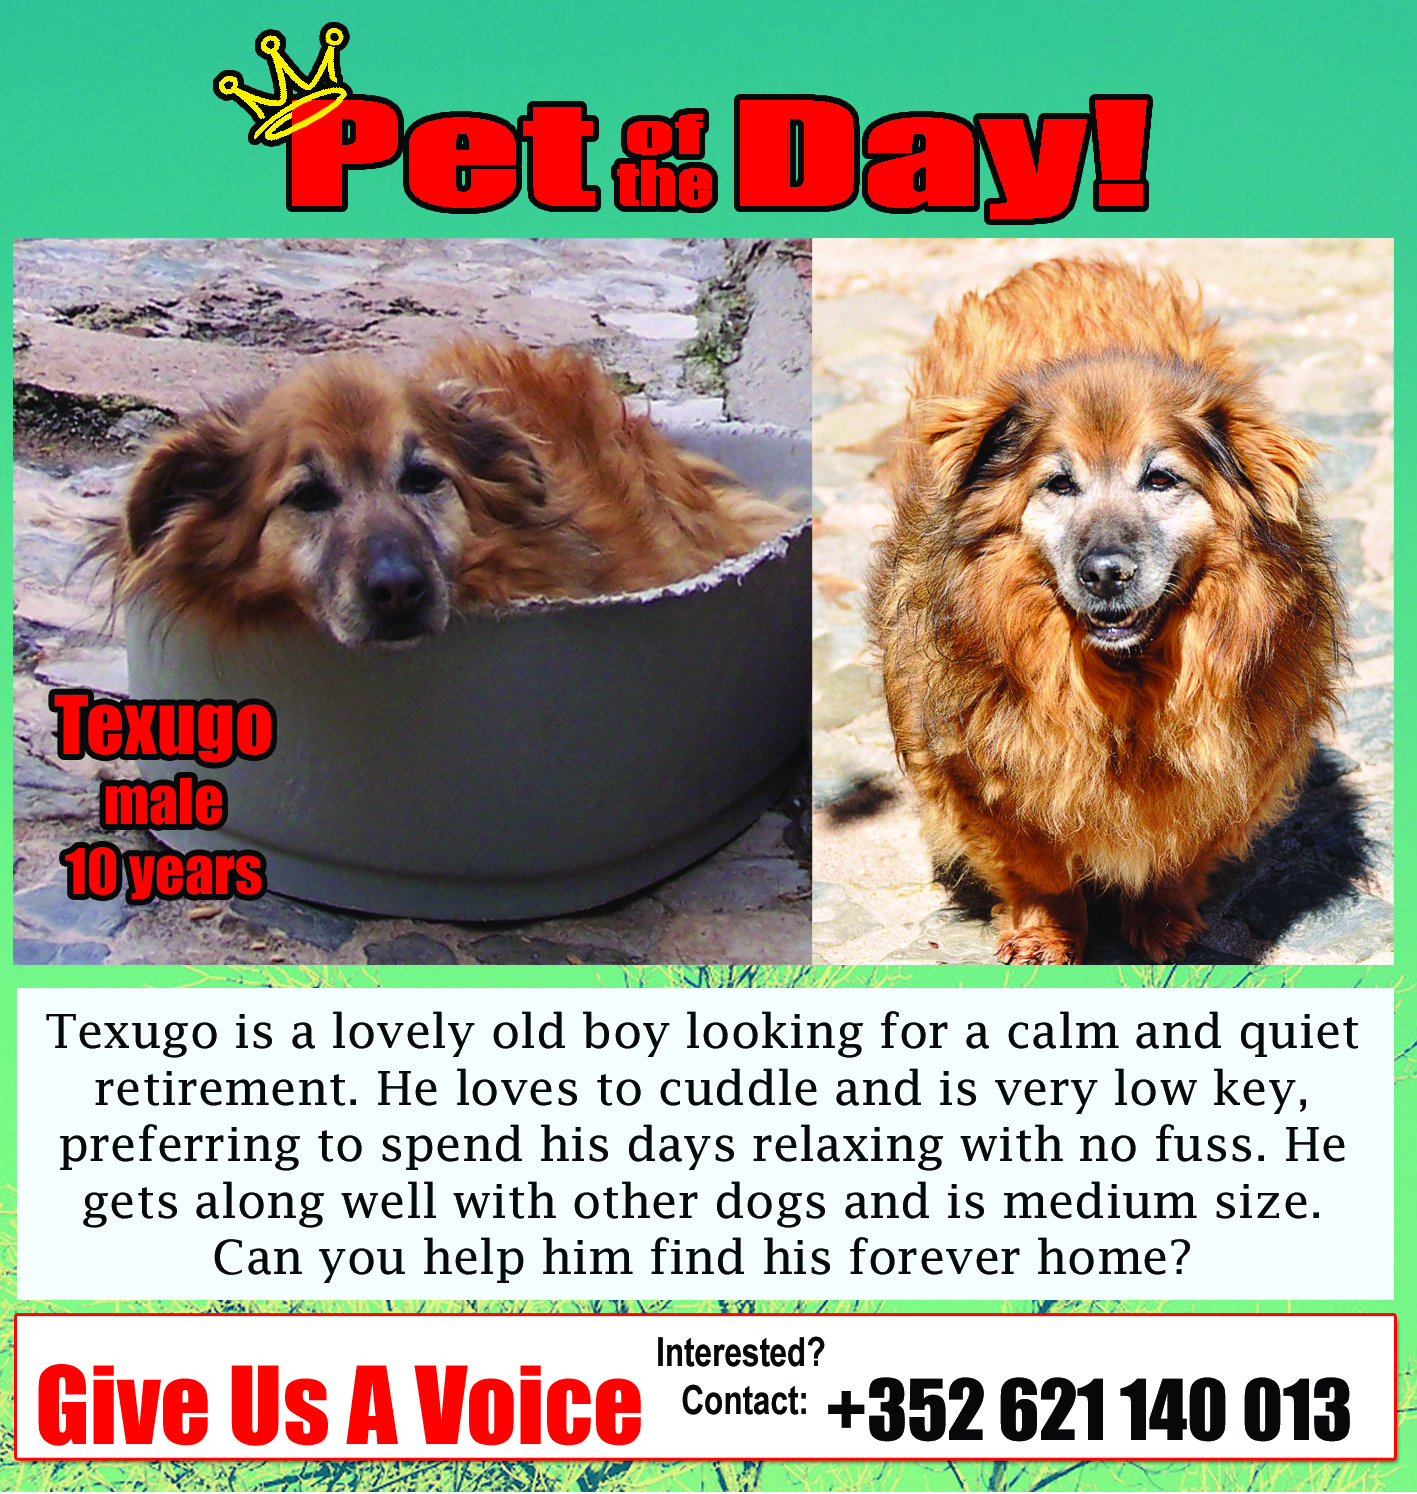 05-18-16 Pet of the Day